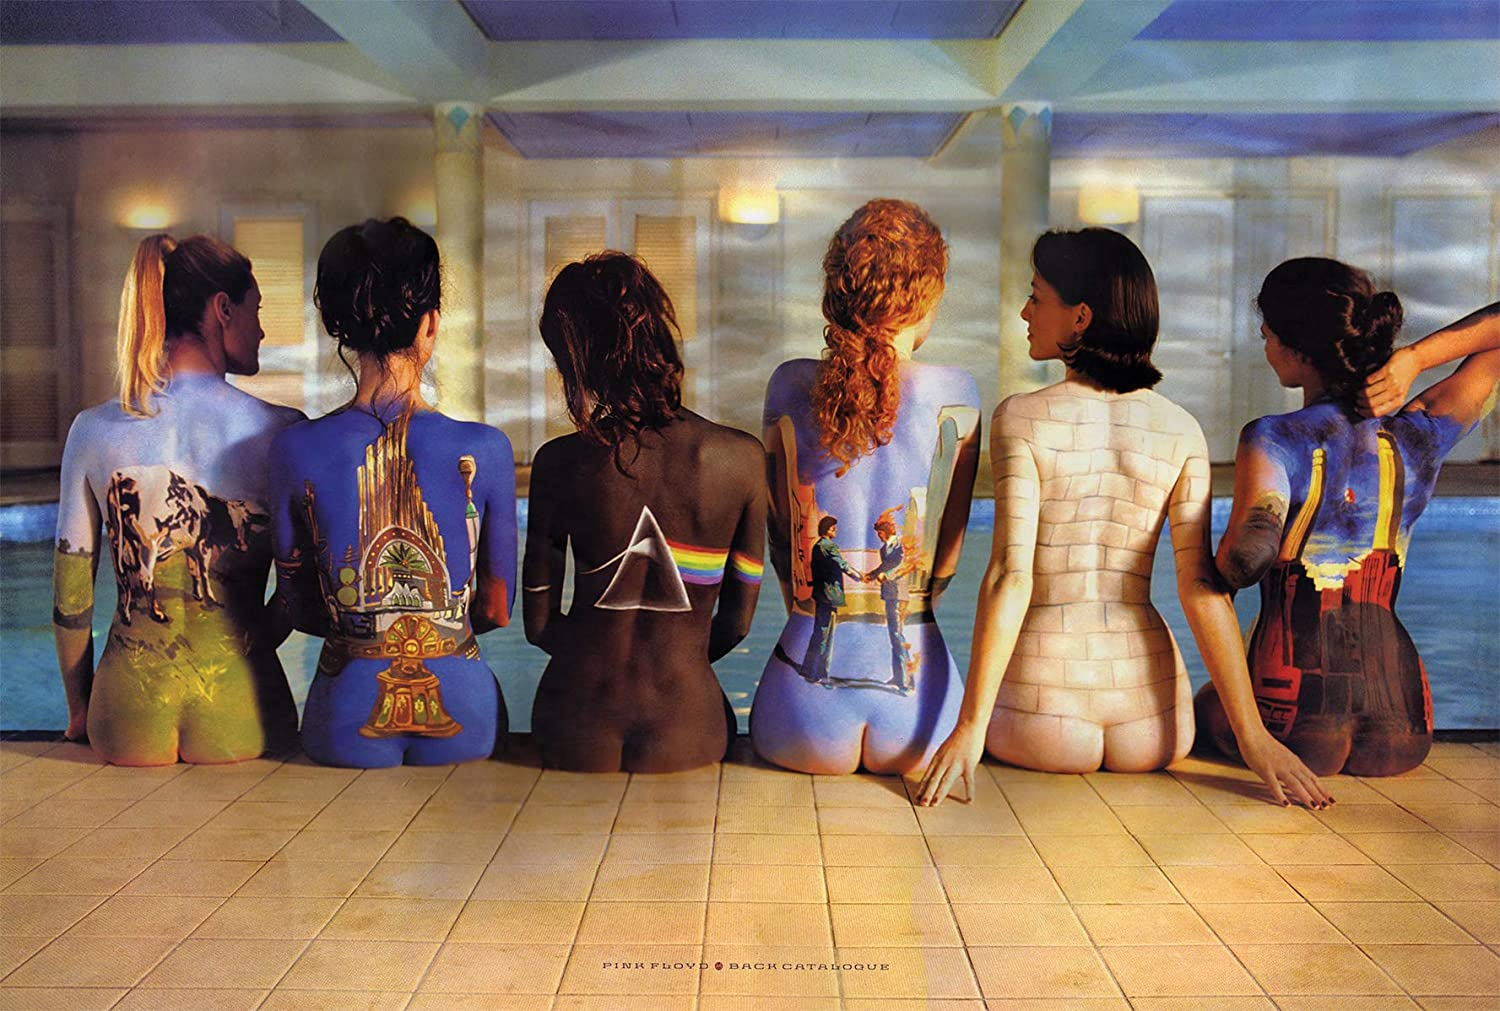 Pink Back Catalogue Floyd Poster for 80s Retro Room Aesthetic, Wall Decor, 17 by 11 inches, Not Framed, Memorabilia Gifts for Guys, Darkside of the Moon Vinyl Records, Rock Art, Premium Silk Art Print